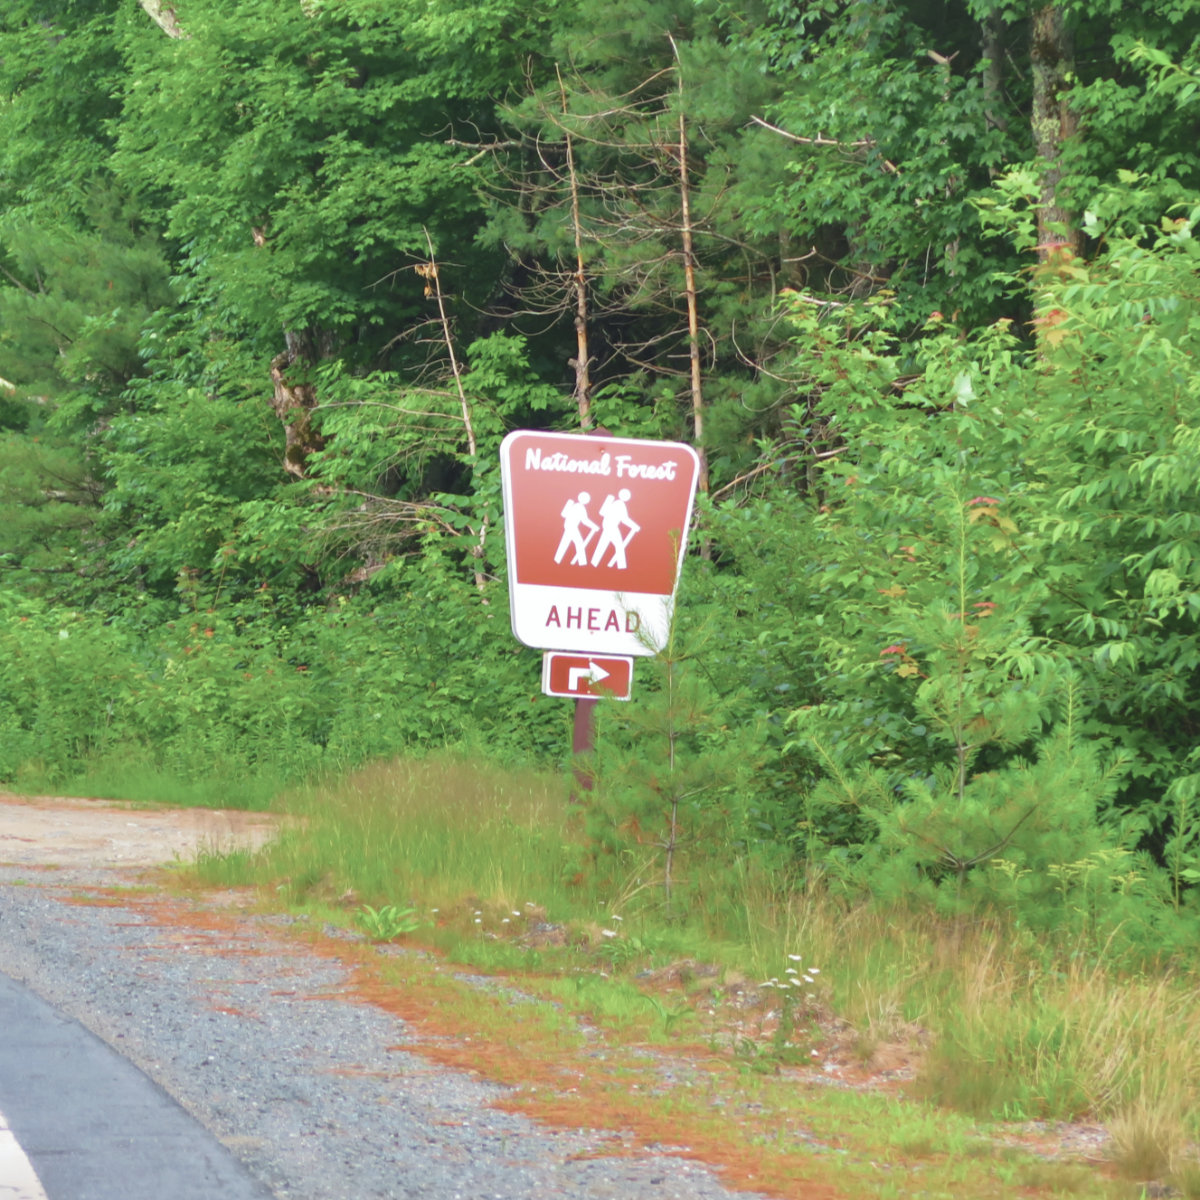 Reel_Brook_Road_Sign_20190713